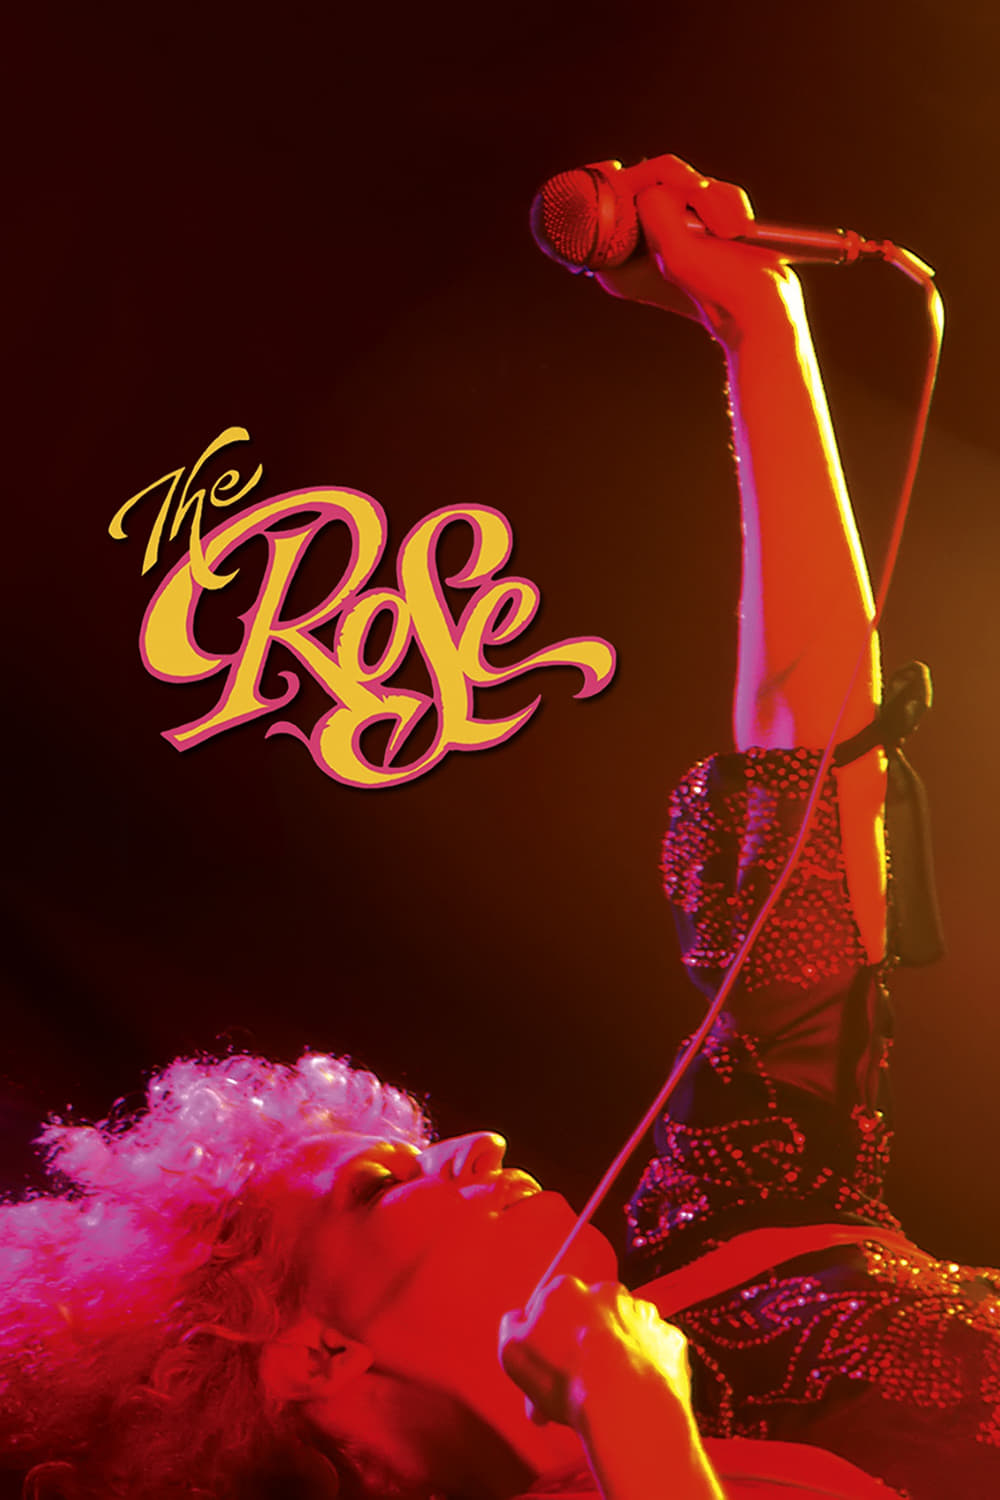 the rose 1979 watch free primewire movies online